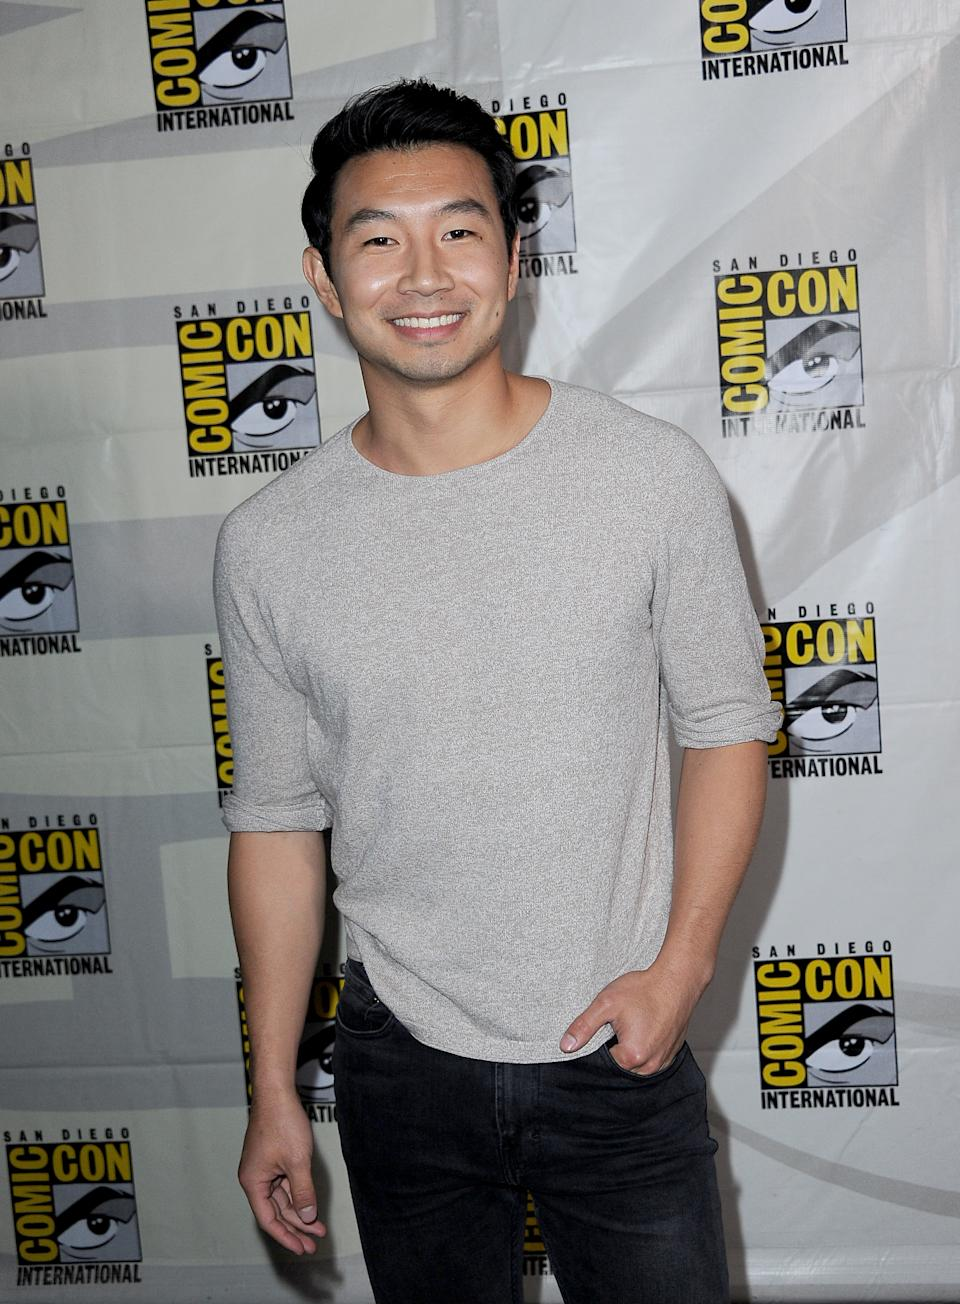 SAN DIEGO, CALIFORNIA - JULY 20: Simu Liu attends the Marvel Studios Panel during 2019 Comic-Con International at San Diego Convention Center on July 20, 2019 in San Diego, California. (Photo by Albert L. Ortega/Getty Images)